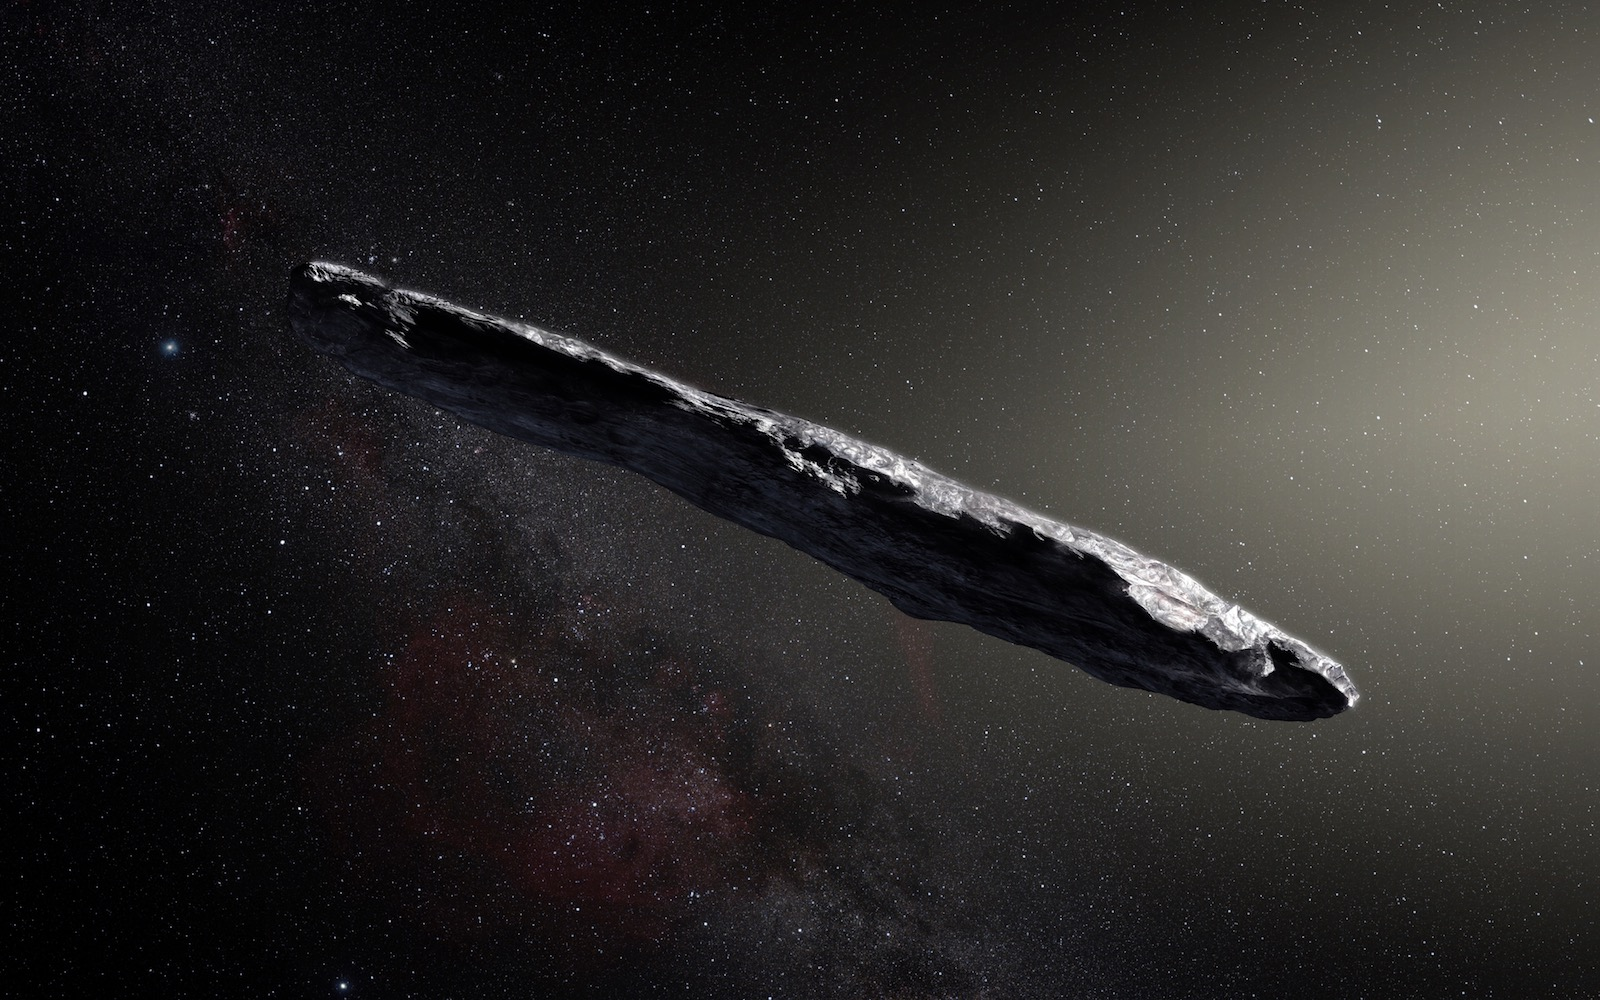 An artist's impression of 'Oumuamua, the first interstellar asteroid. Credit: ESO/M. Kornmesser.